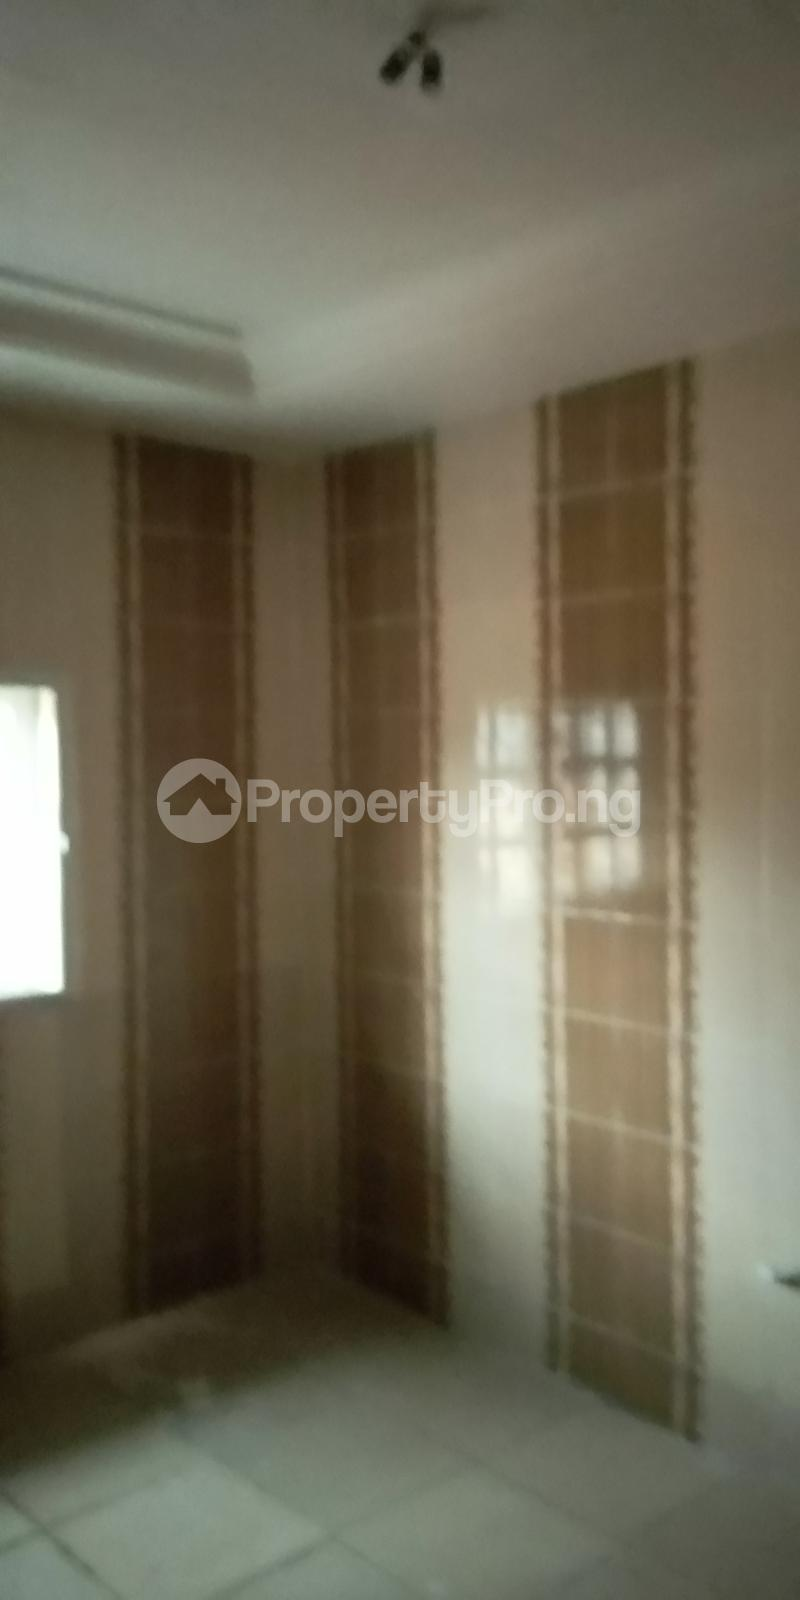 3 bedroom Flat / Apartment for rent Olive Ago palace Okota Lagos - 4